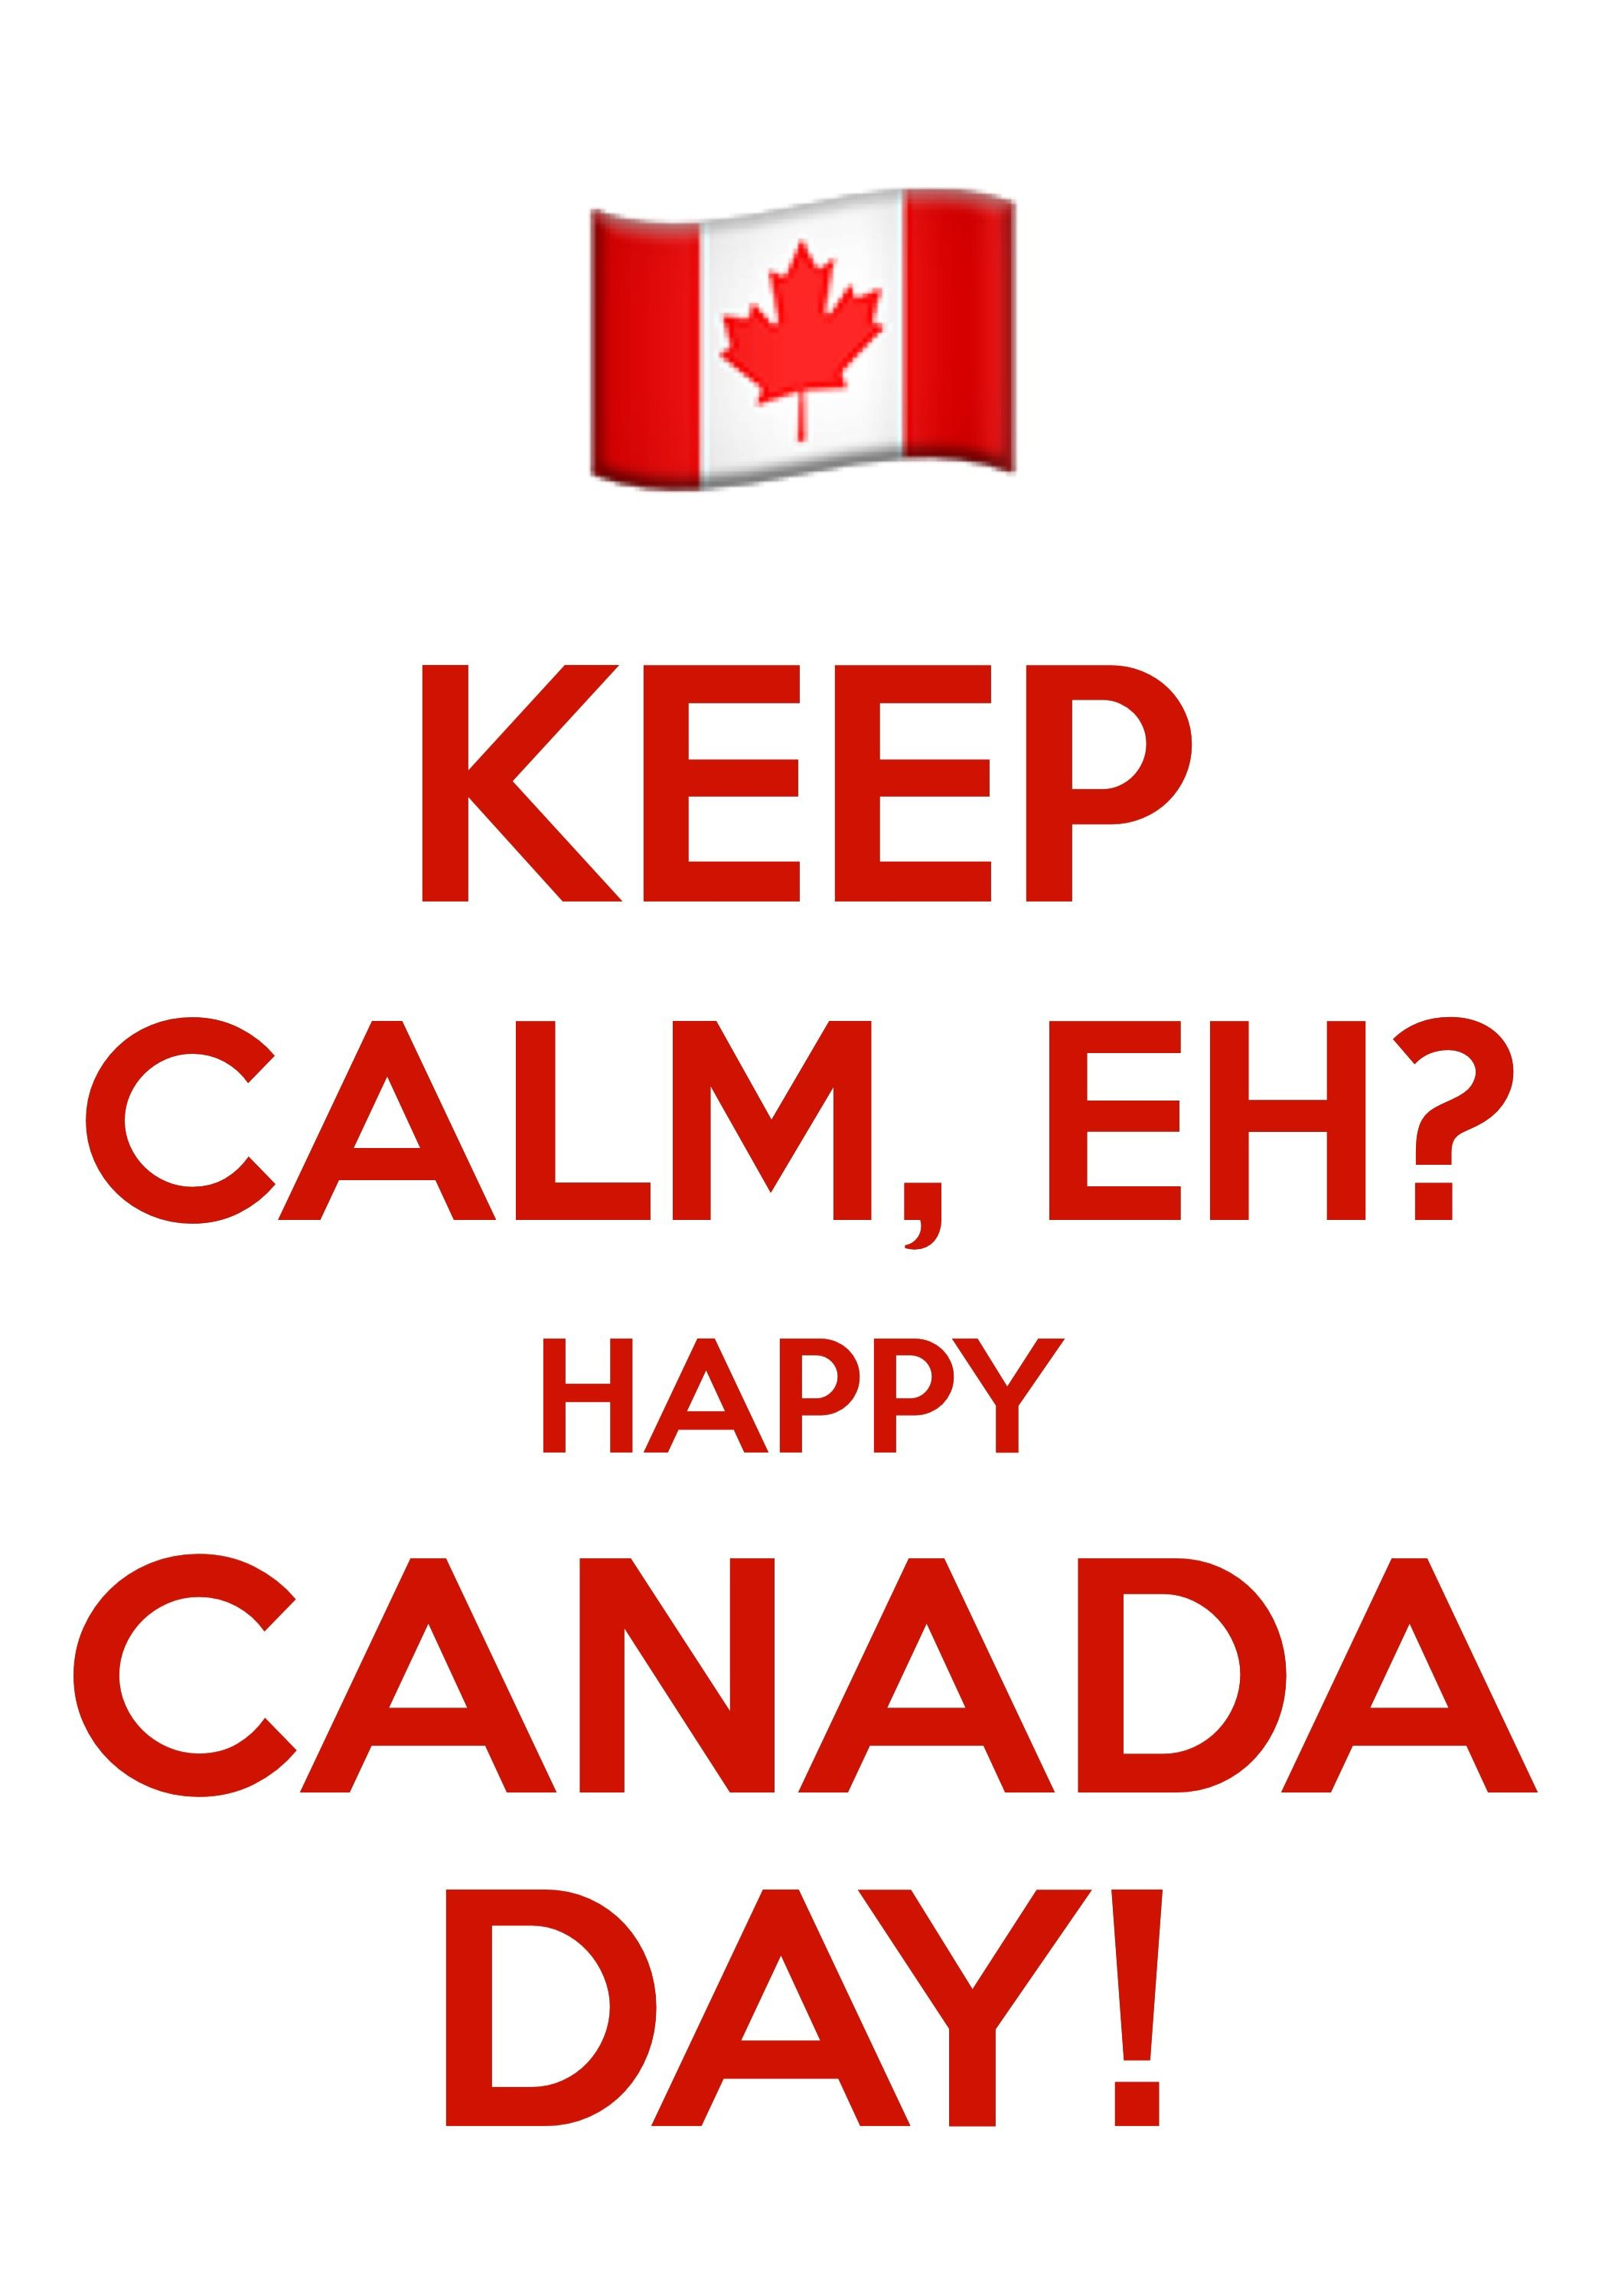 Keep Calm, Eh? Happy Canada Day! / created with Keep Calm and Carry On for iOS #keepcalm #KeepCalmEh #Canada #CanadaDay #eh #HappyCanadaDay